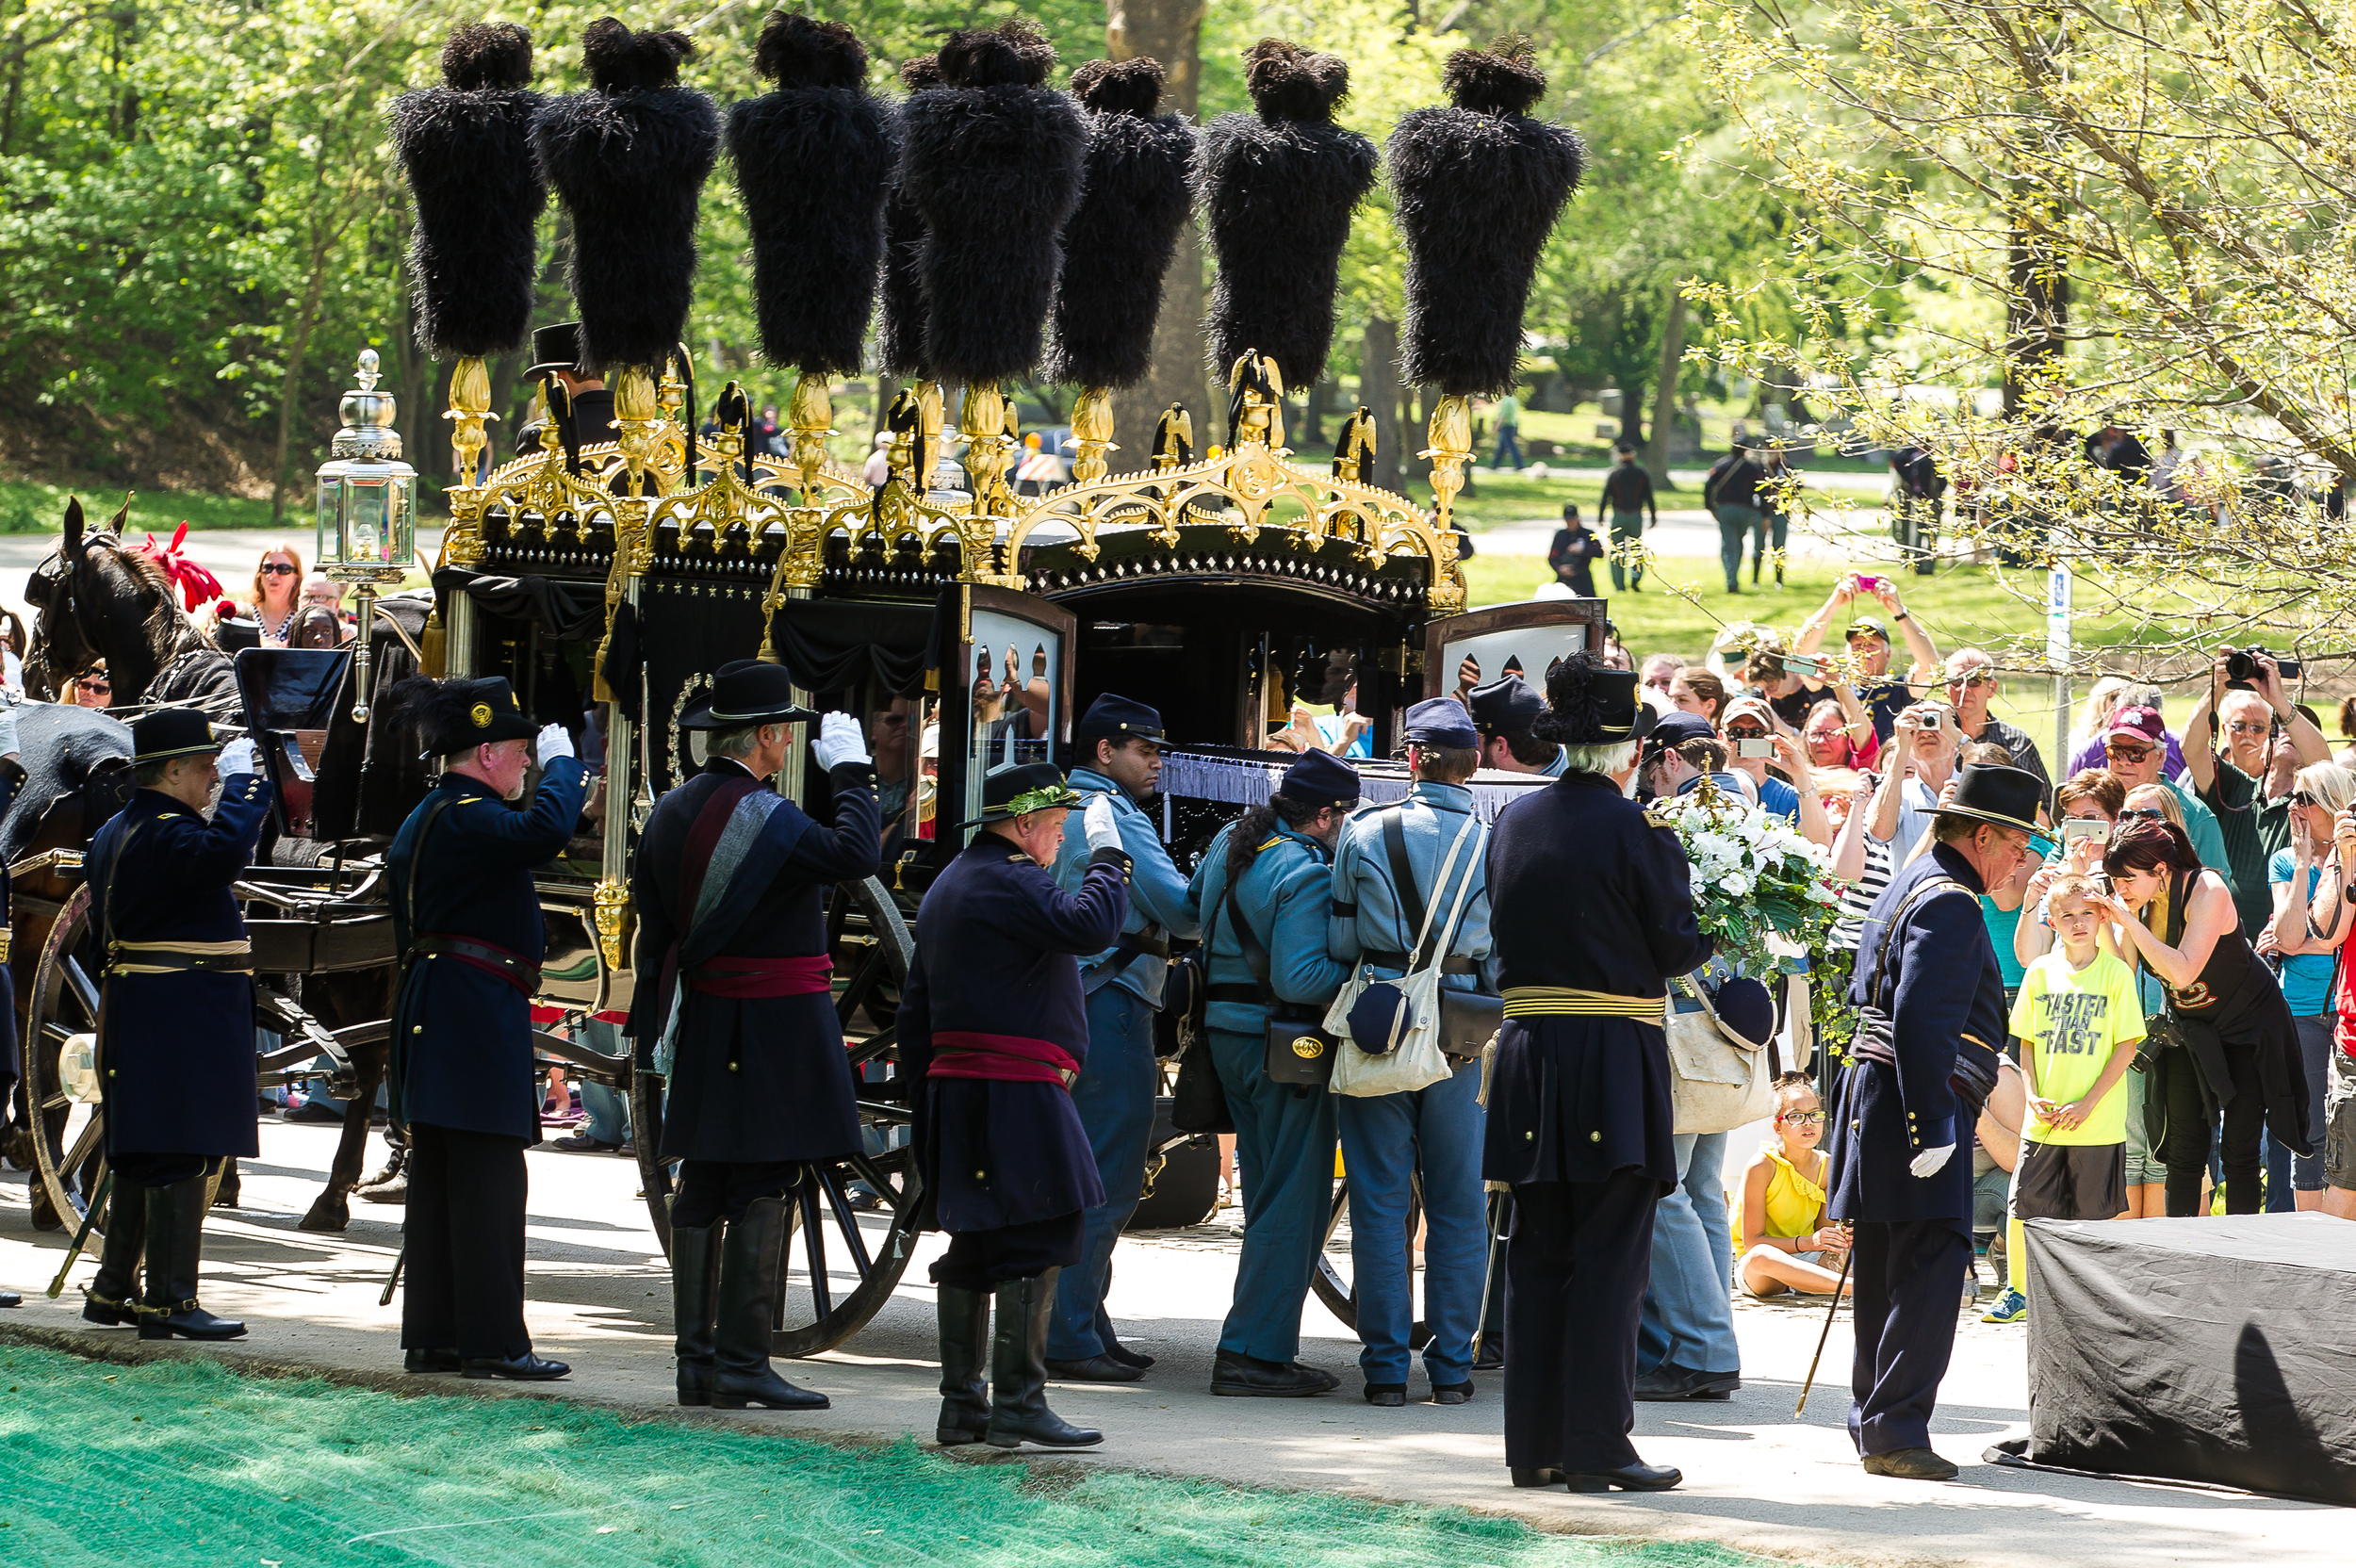 The Veteran Reserve Corps unloads Lincoln's casket from the replica horse drawn hearse in front of the original receiving vault during the 2015 Lincoln Funeral Re-enactment, Sunday, May 3, 2015, in Springfield, Ill. Justin L. Fowler/The State Journal-Register